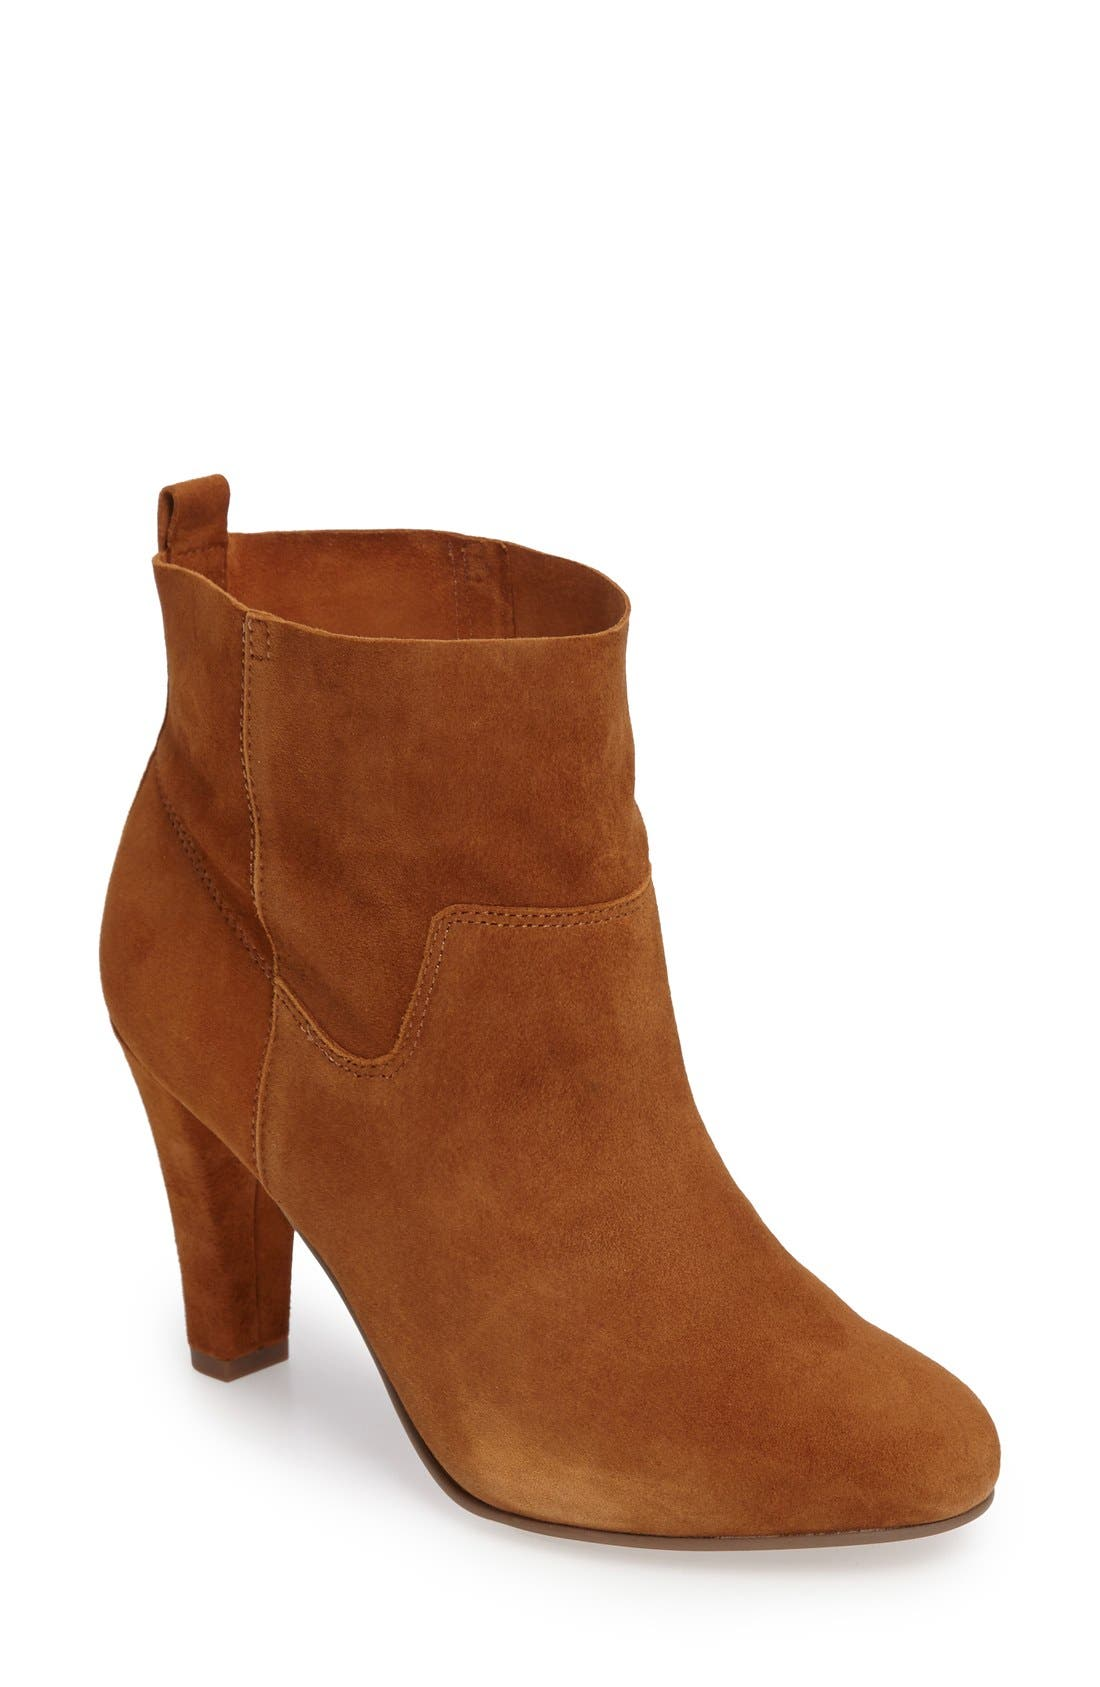 Alternate Image 1 Selected - Sole Society Laurel Slightly Slouchy Bootie (Women)